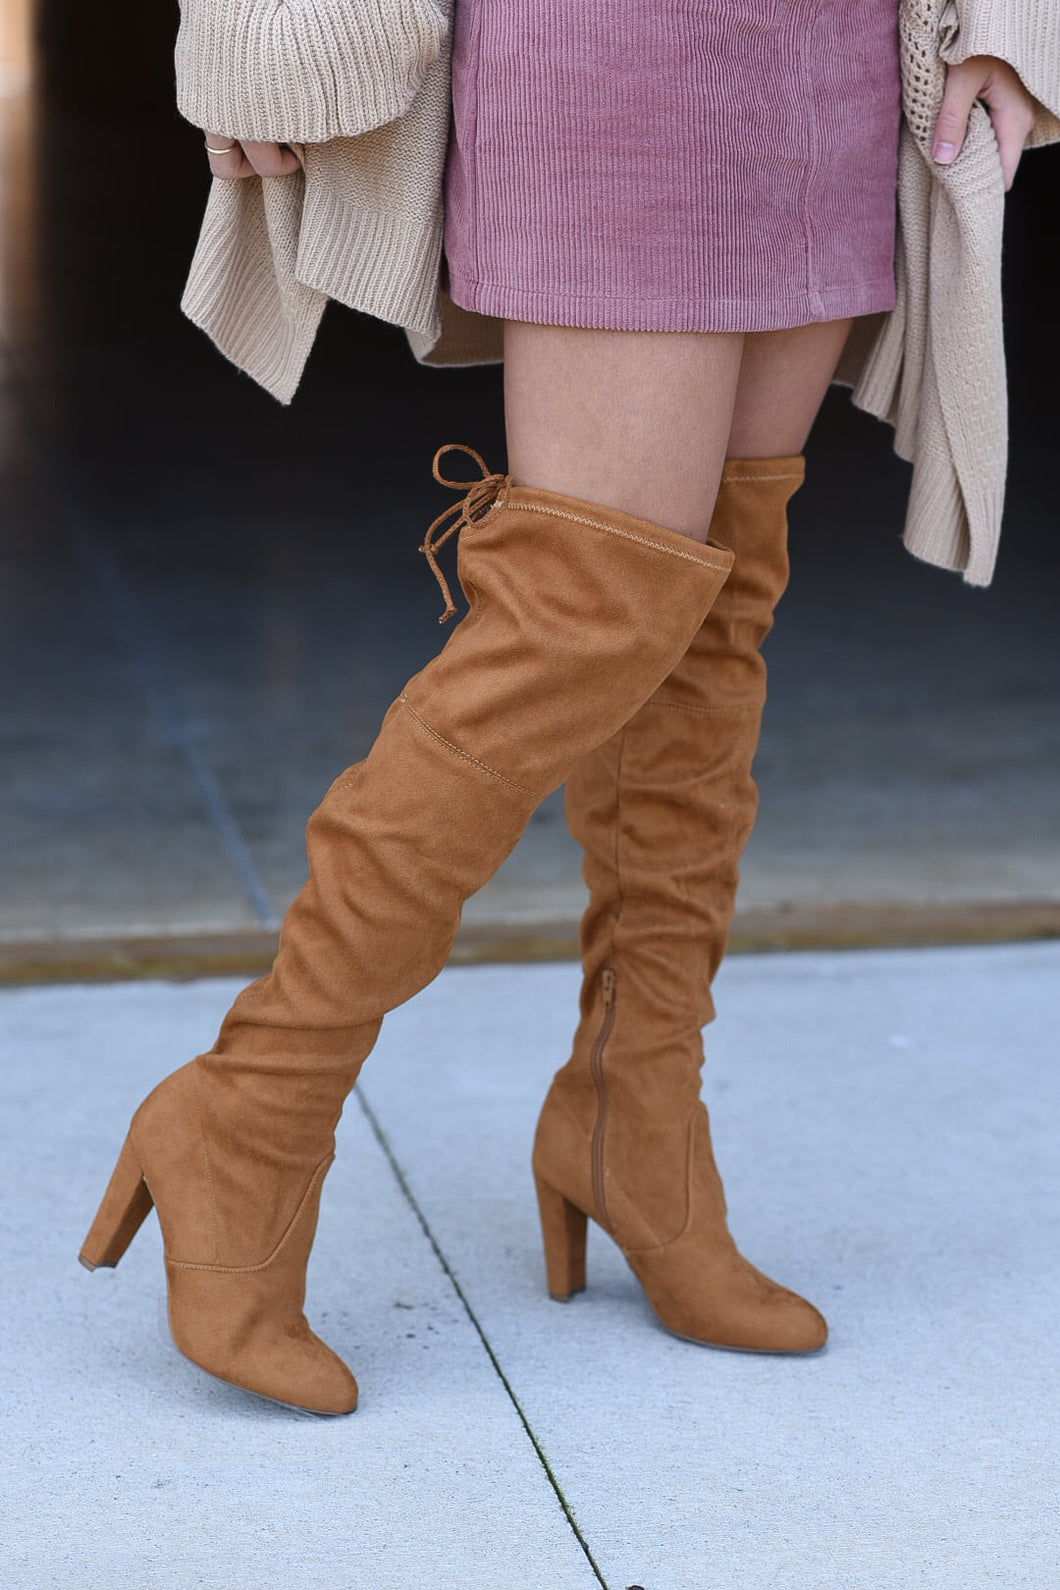 The Emily Over The Knee Boots